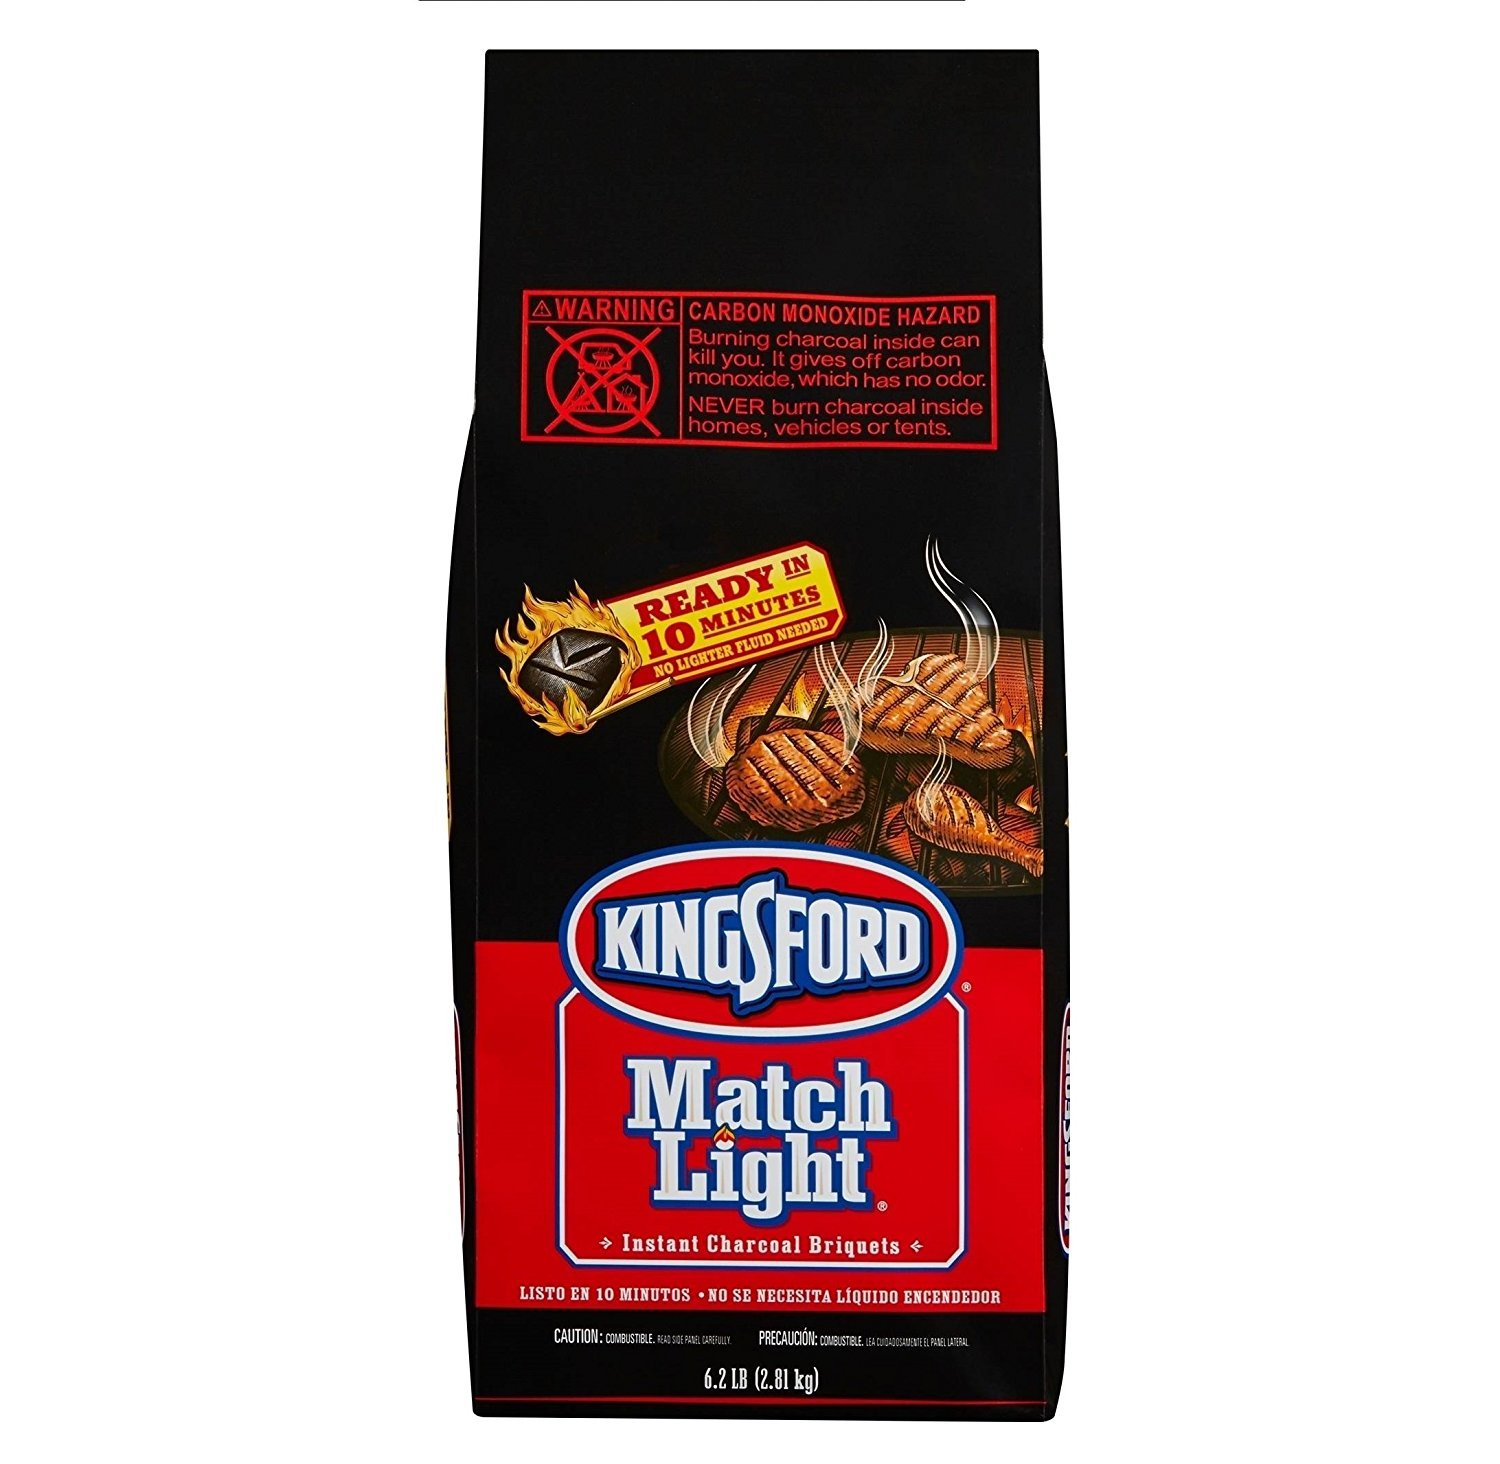 Kingsford Match Light Charcoal Briquets, Two 6.2 lb Bags by Kingsford